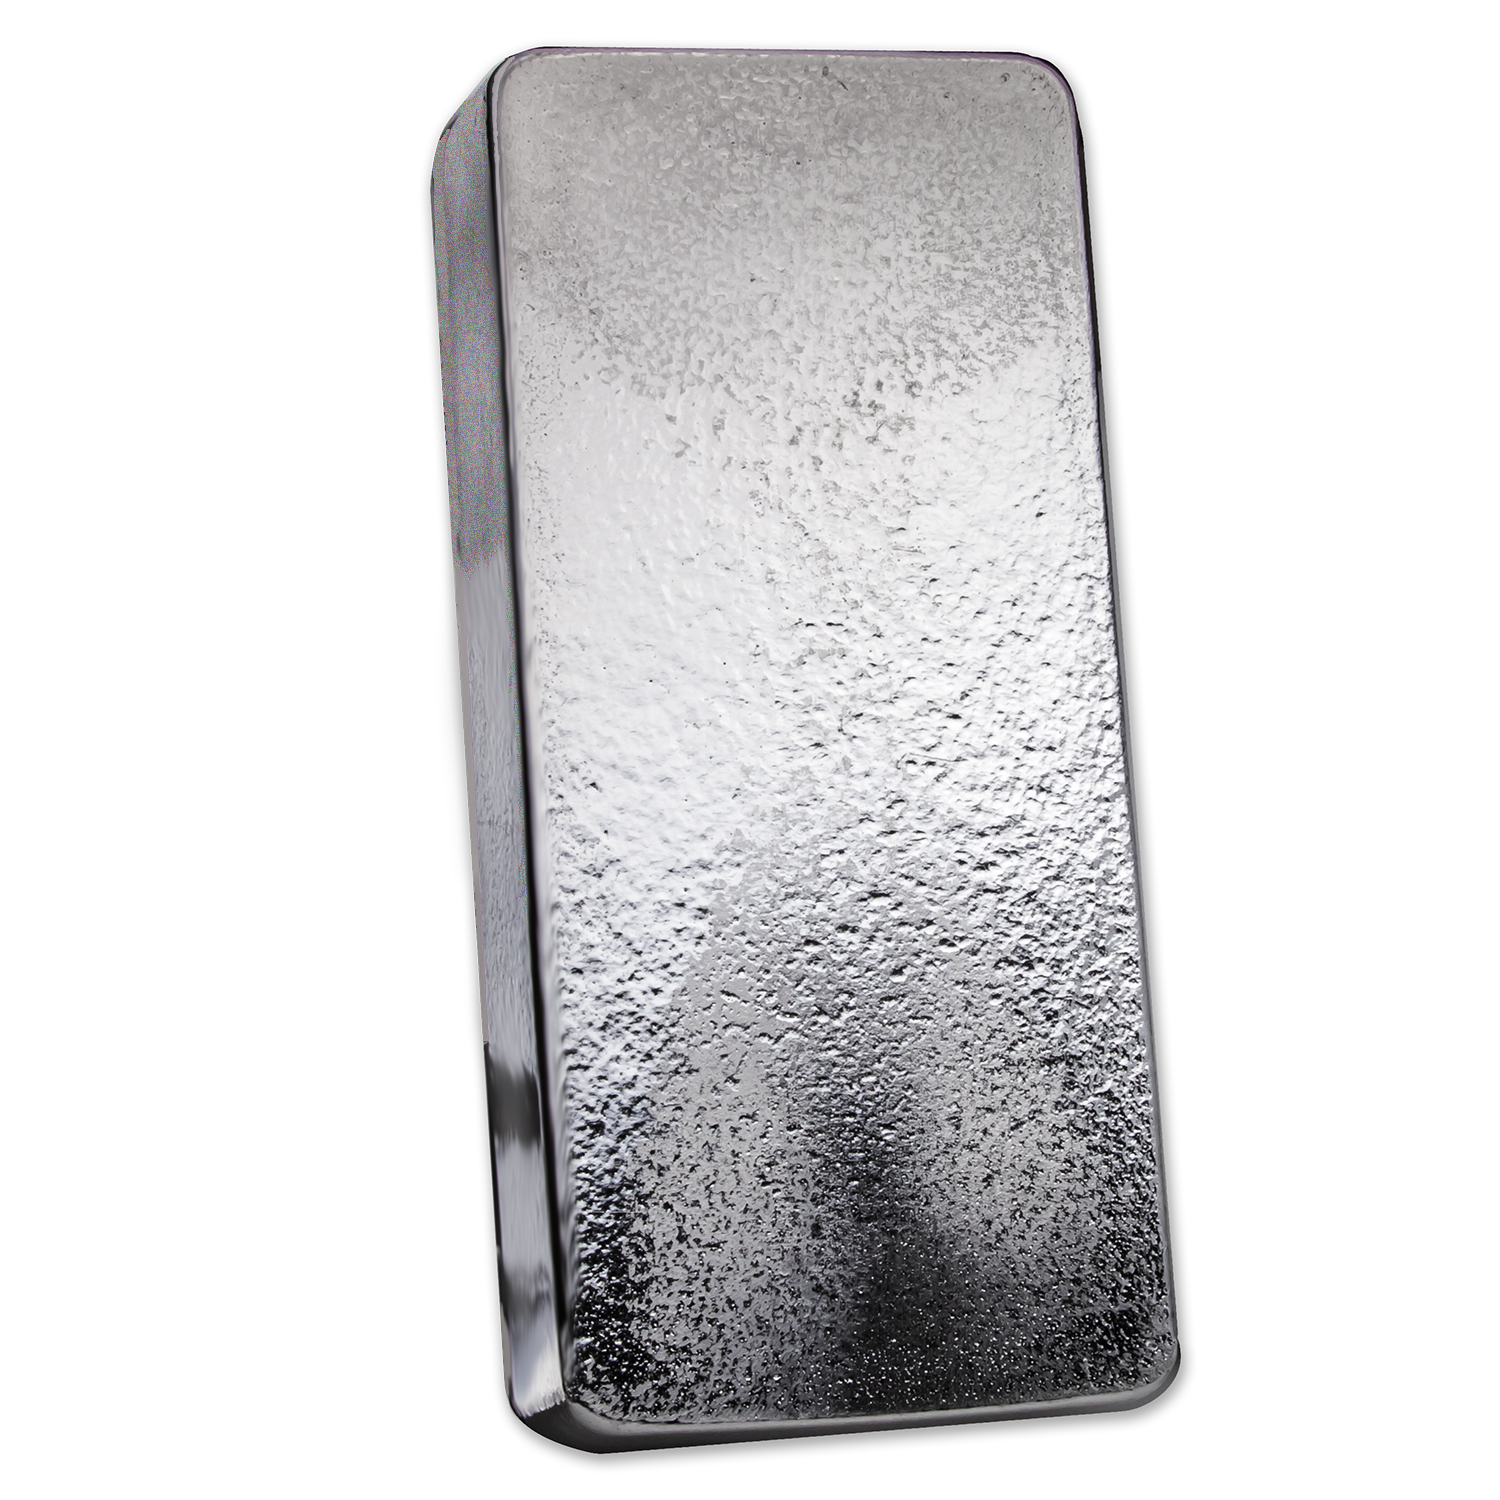 100 oz Silver Bar - APMEX/RMC (.9999 Fine, Co-Branded)